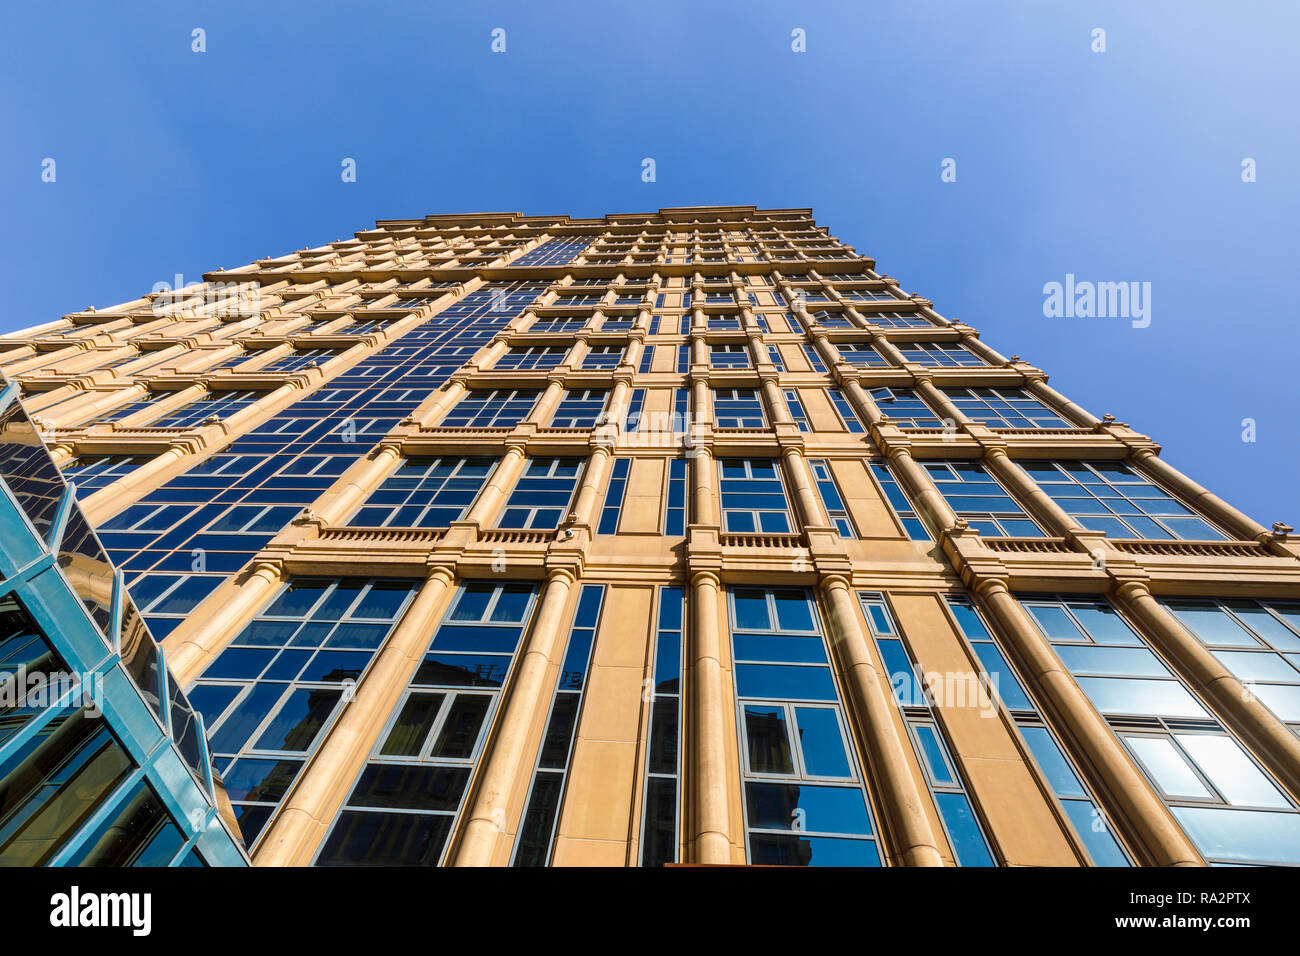 View looking up of the modern architecture exterior of the luxurious 5 star Cairo At The First Residence Four Seasons Hotel, Giza, Cairo, Egypt Stock Photo